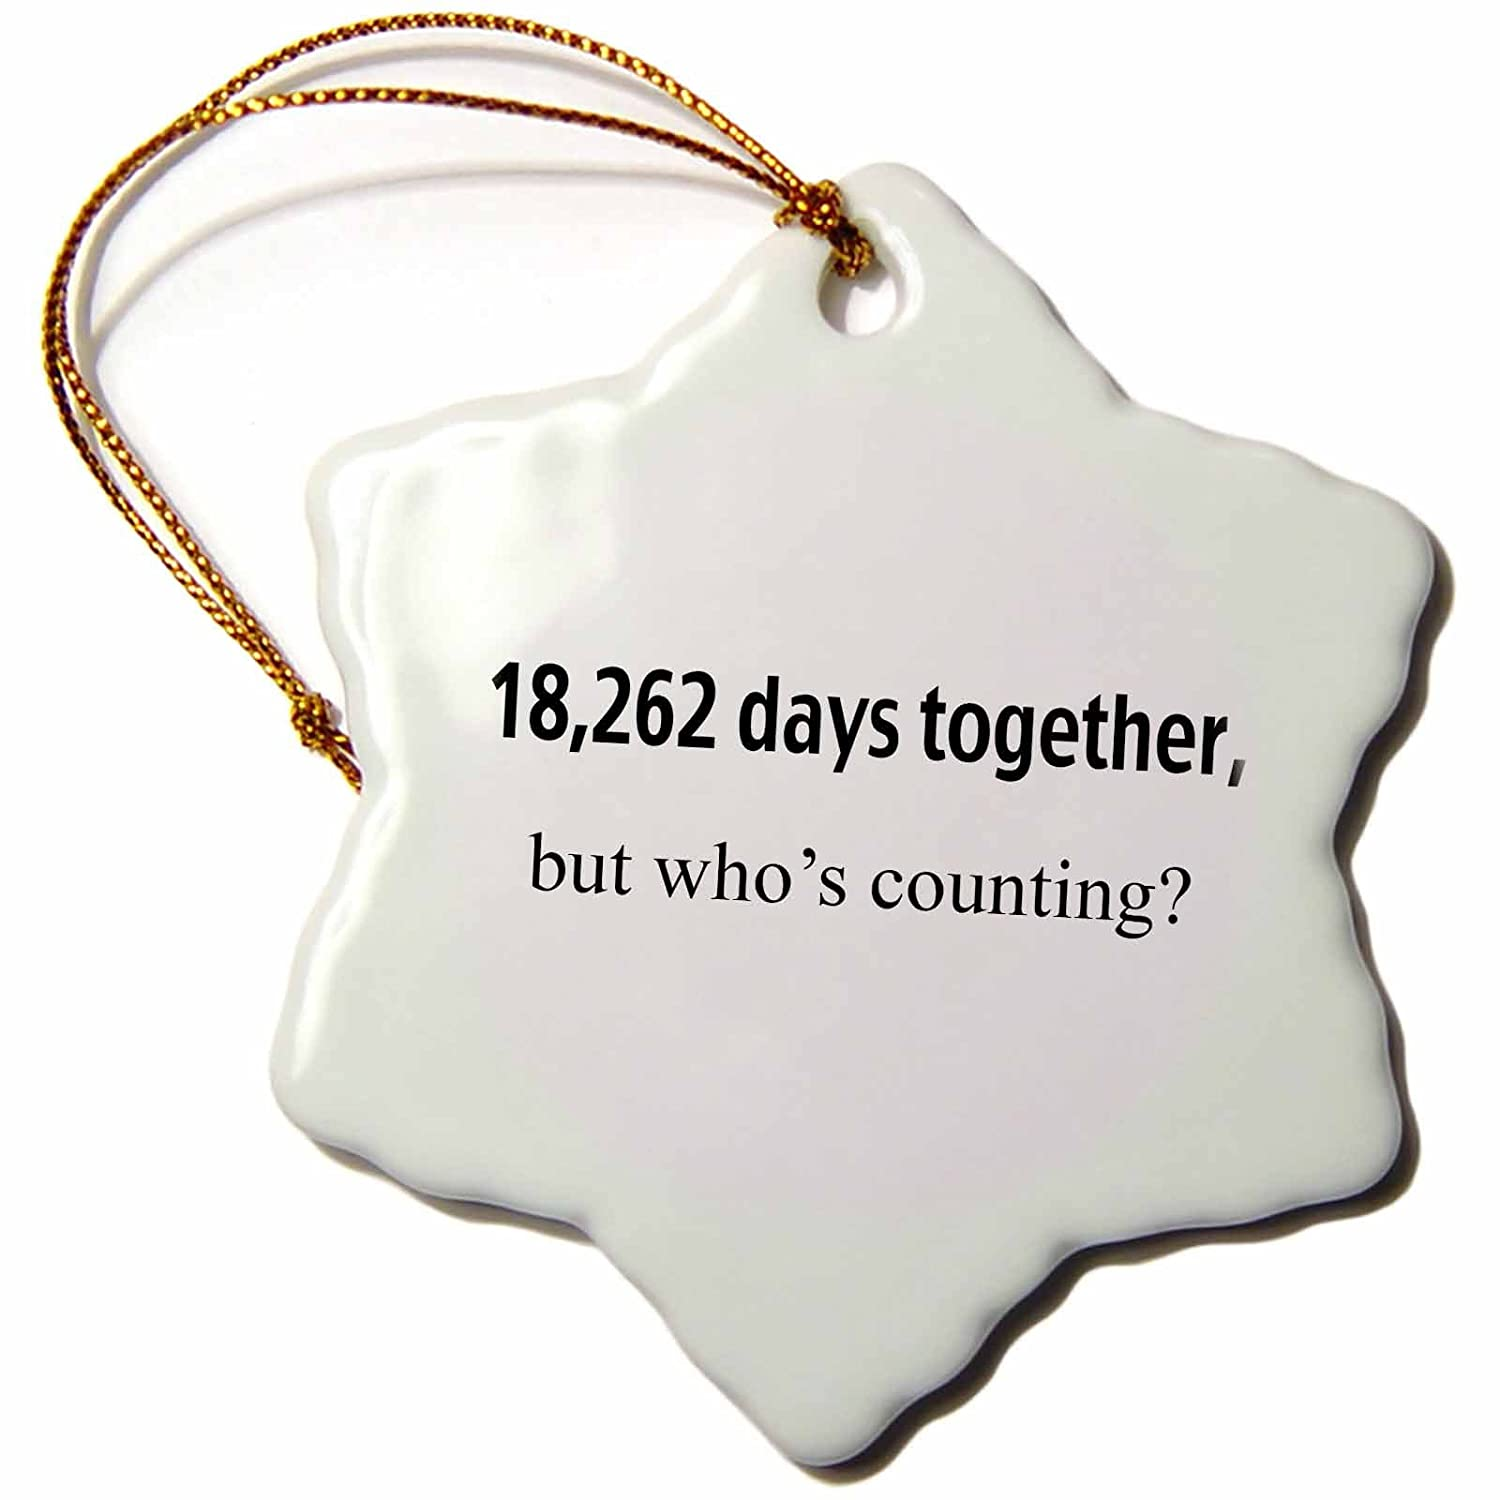 3dRose orn_112217_1 18262 Days Together But Whos Counting Happy 50th Anniversary Snowflake Ornament, 3-Inch, Porcelain